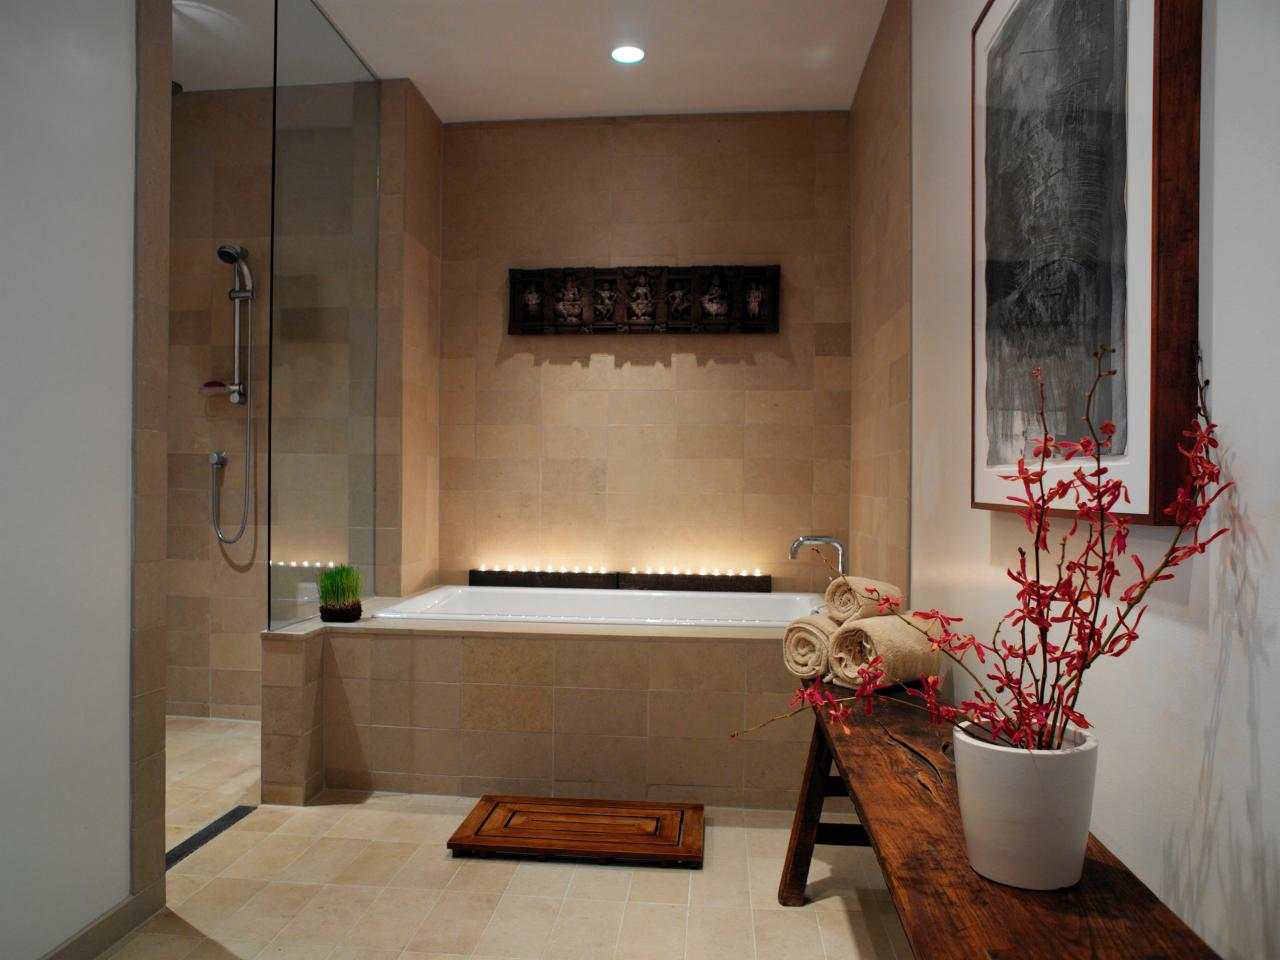 Spa bathroom design ideas romantic master bath design and ideas Romantic bathroom design ideas